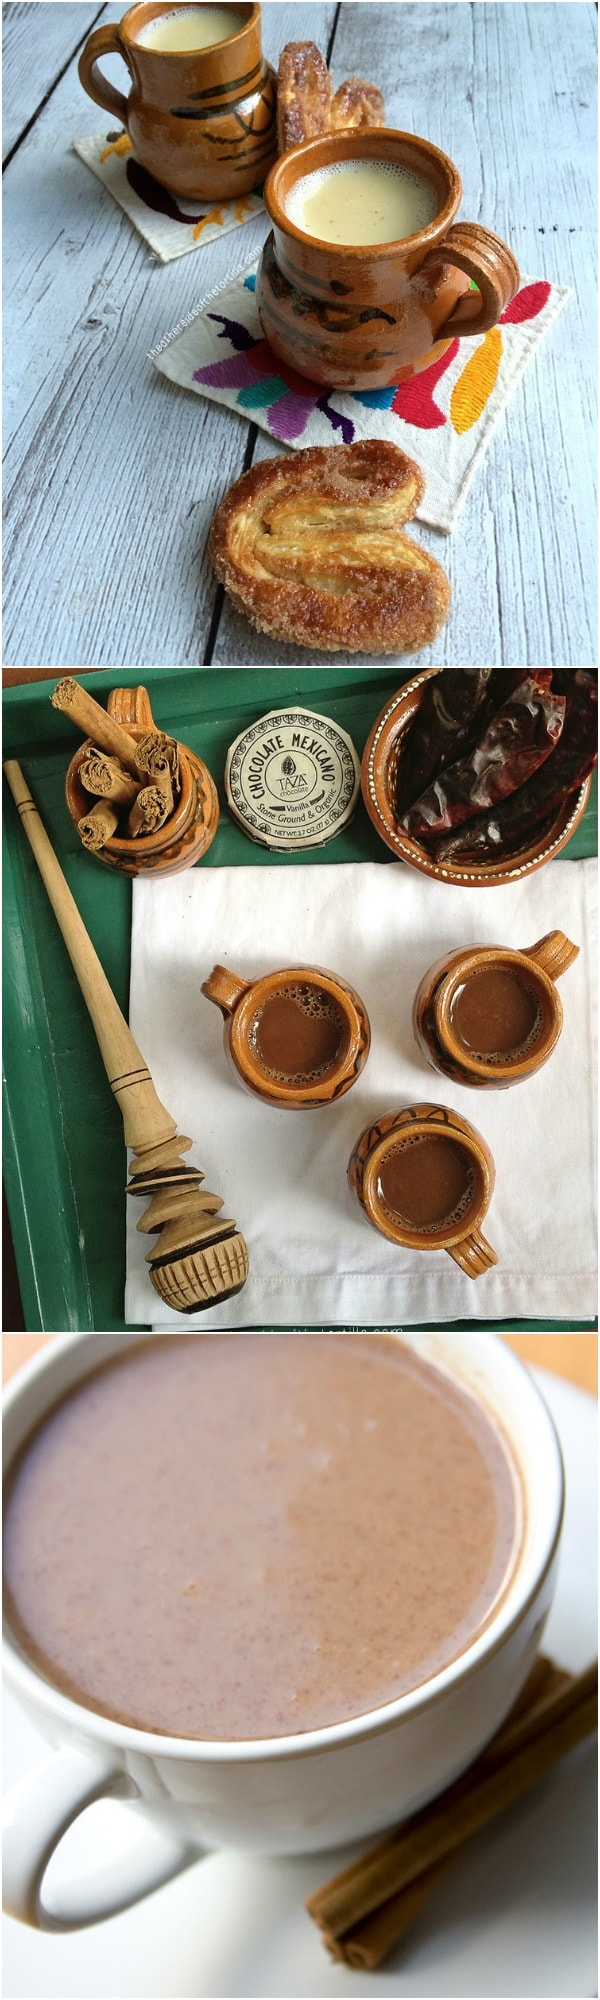 14 Family Activities for Fall: Make atole, hot chocolate or champurrado! Via hispanaglobal.net